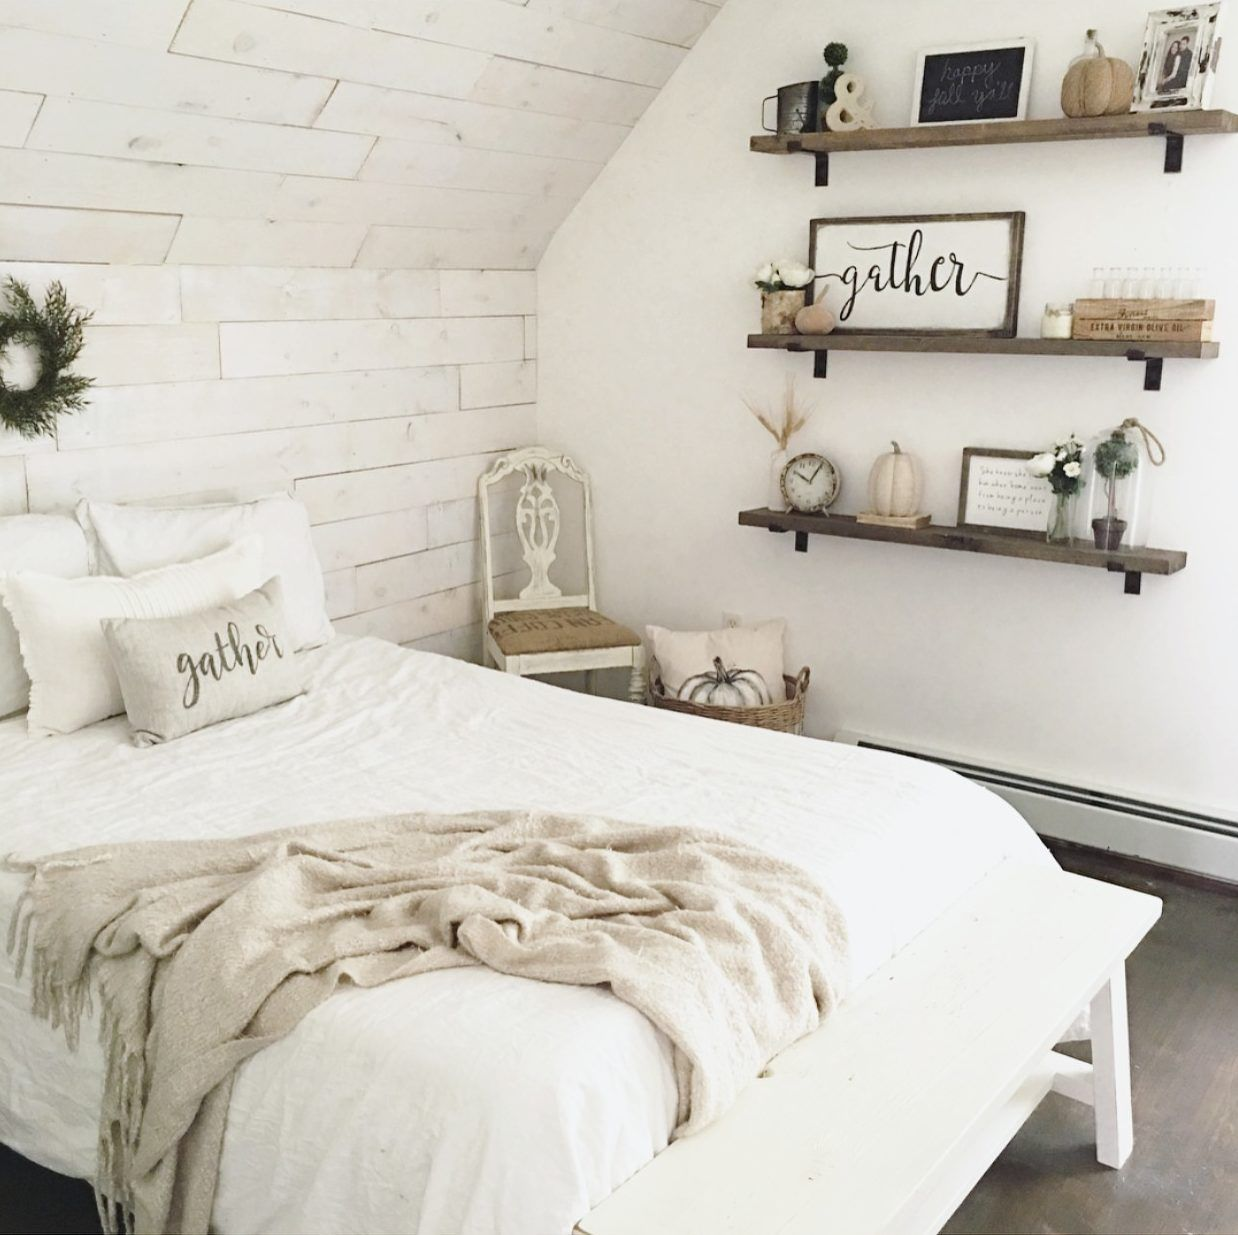 Decorating Walls Of Bedroom: Farmhouse Bedroom With Shiplap